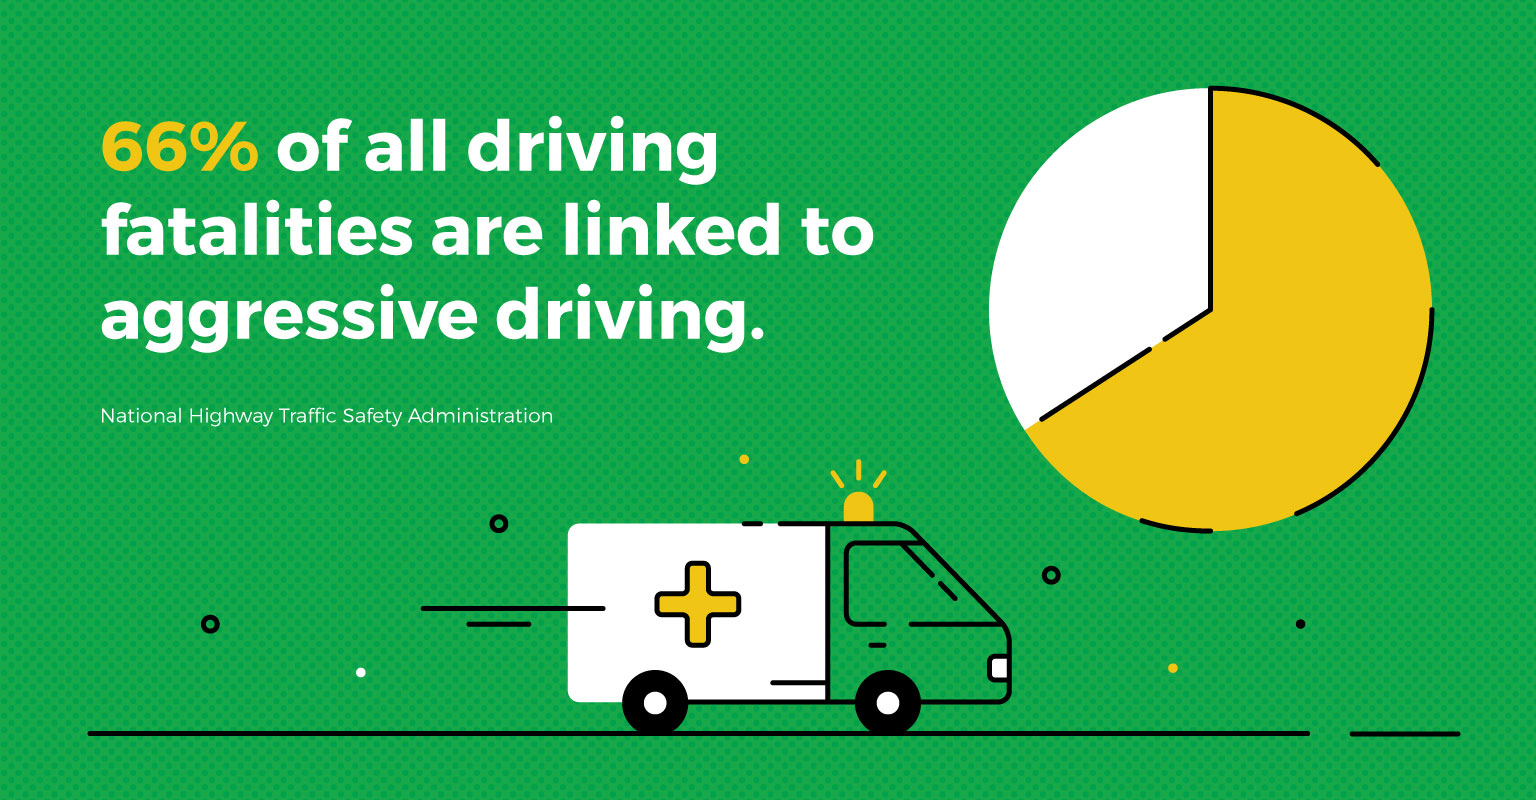 statistic that 66% of fall driving fatalities are linked to aggressive driving